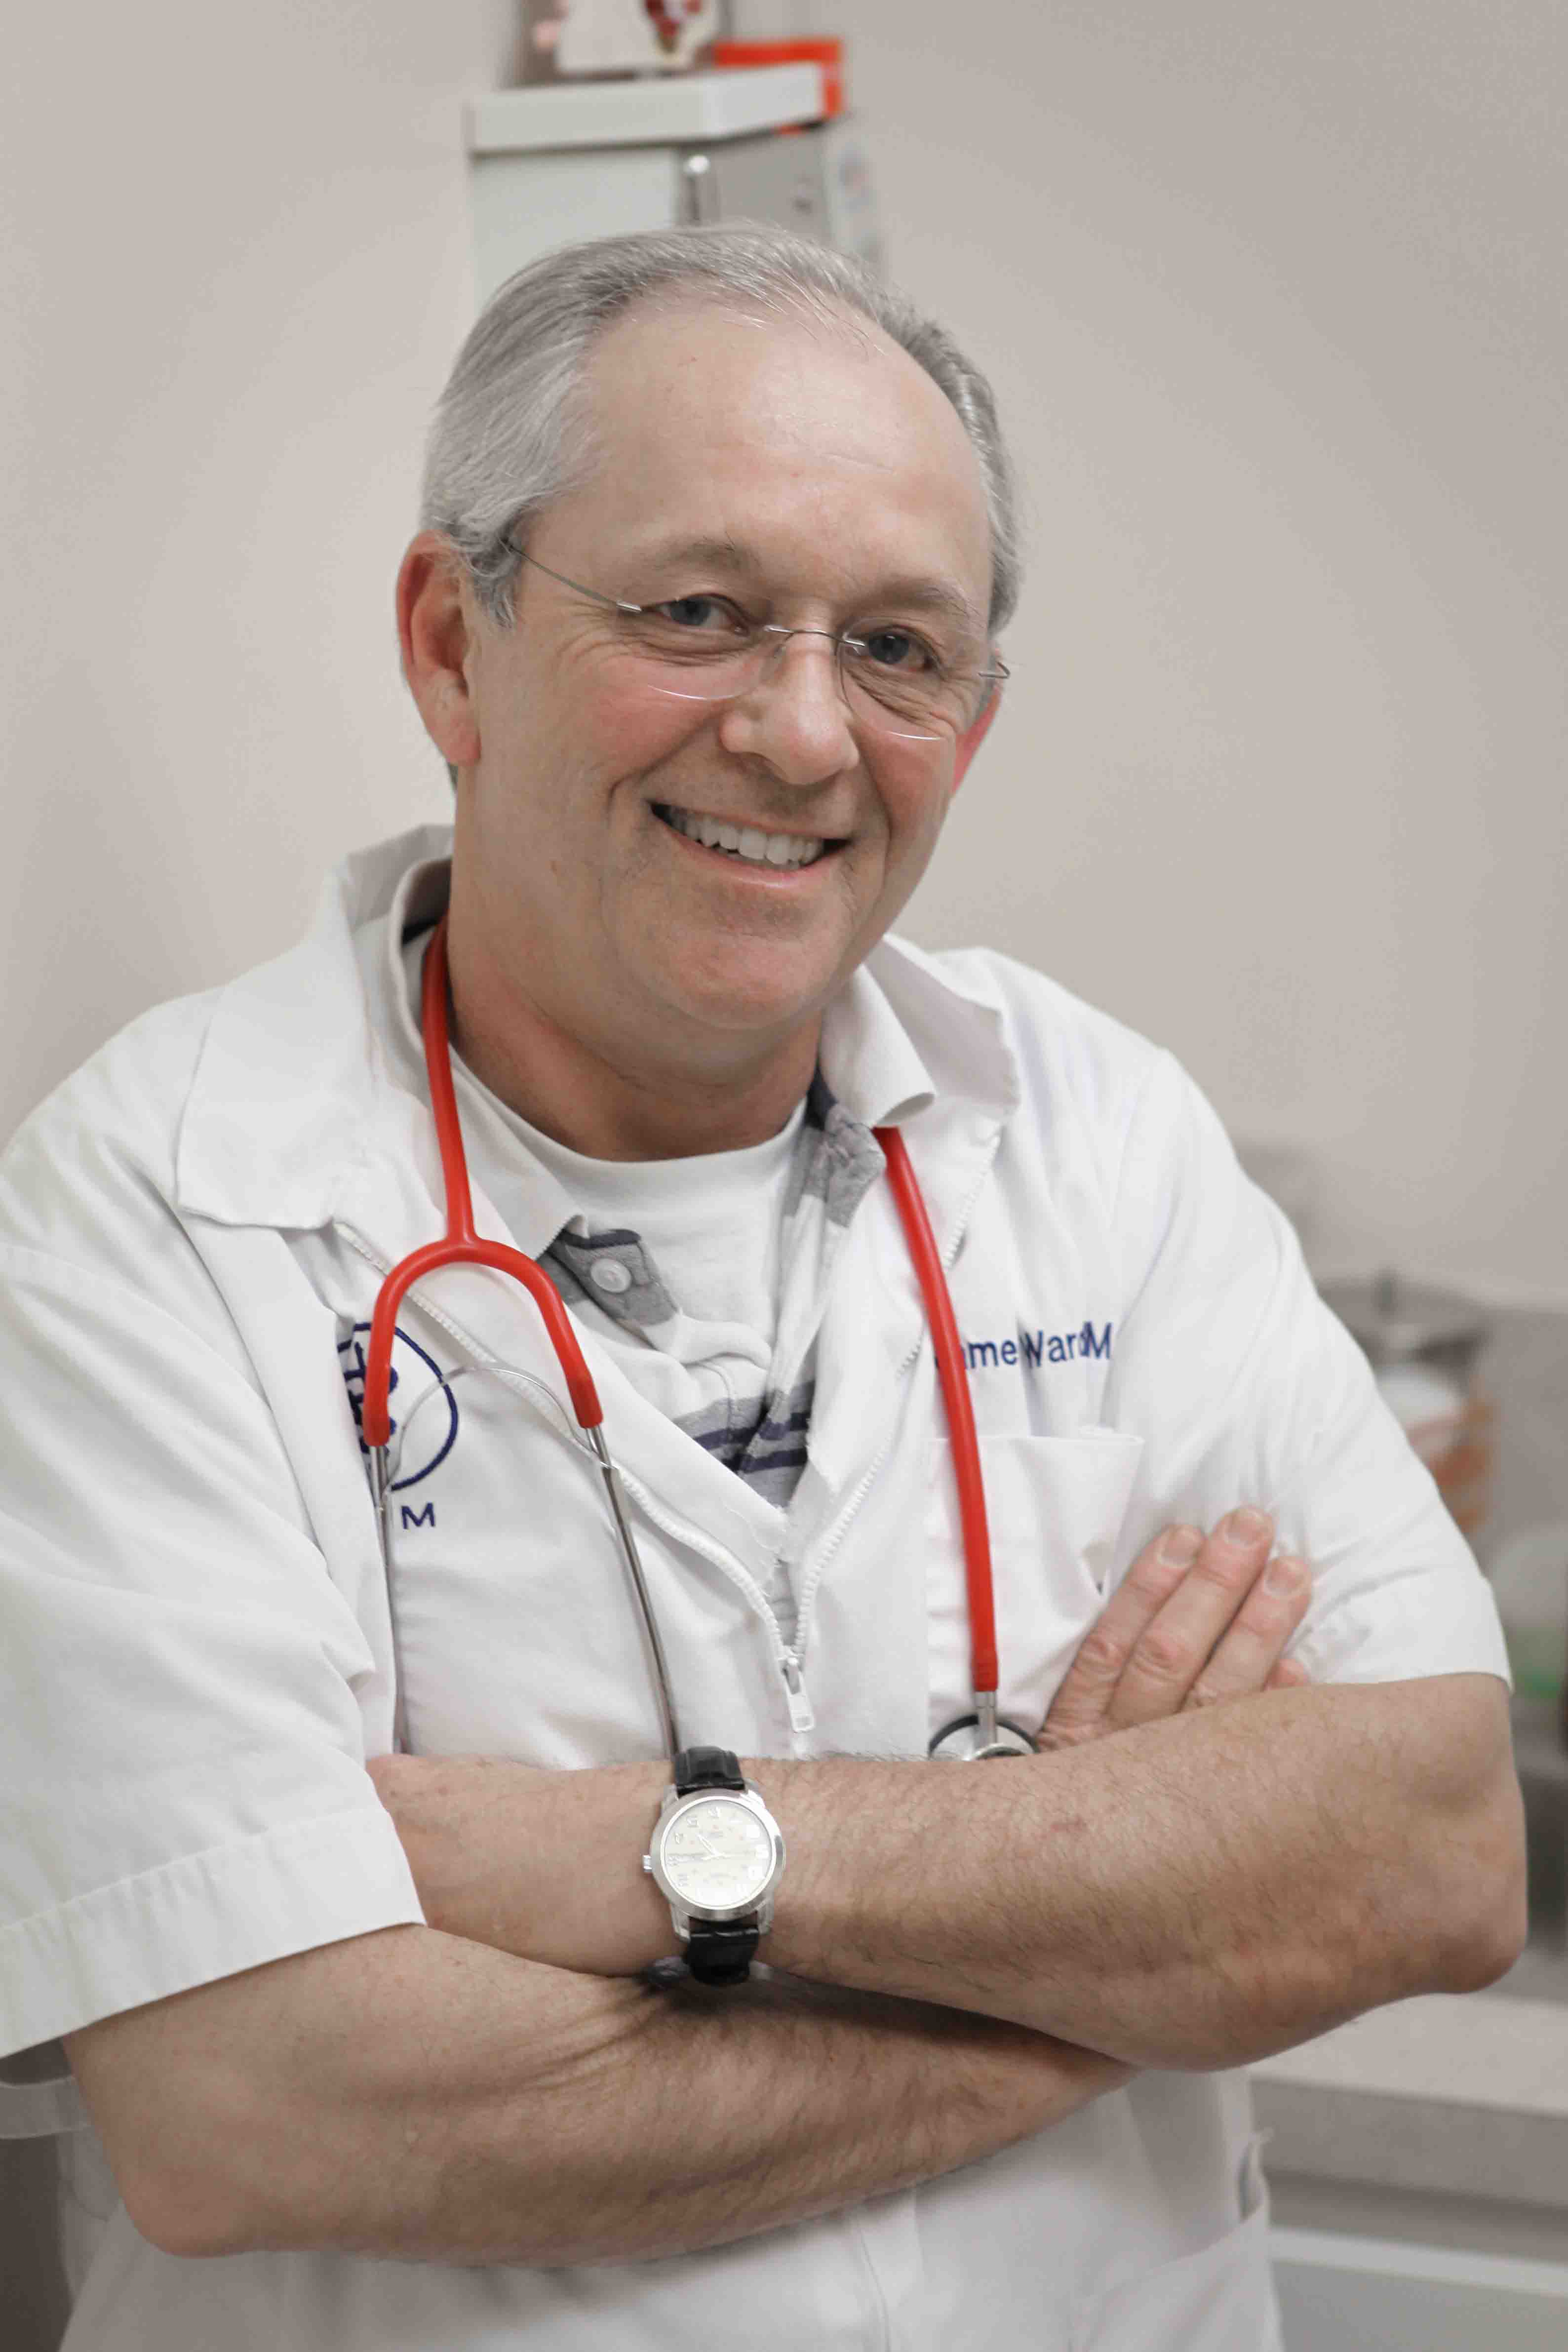 Dr. James Ward, DVM